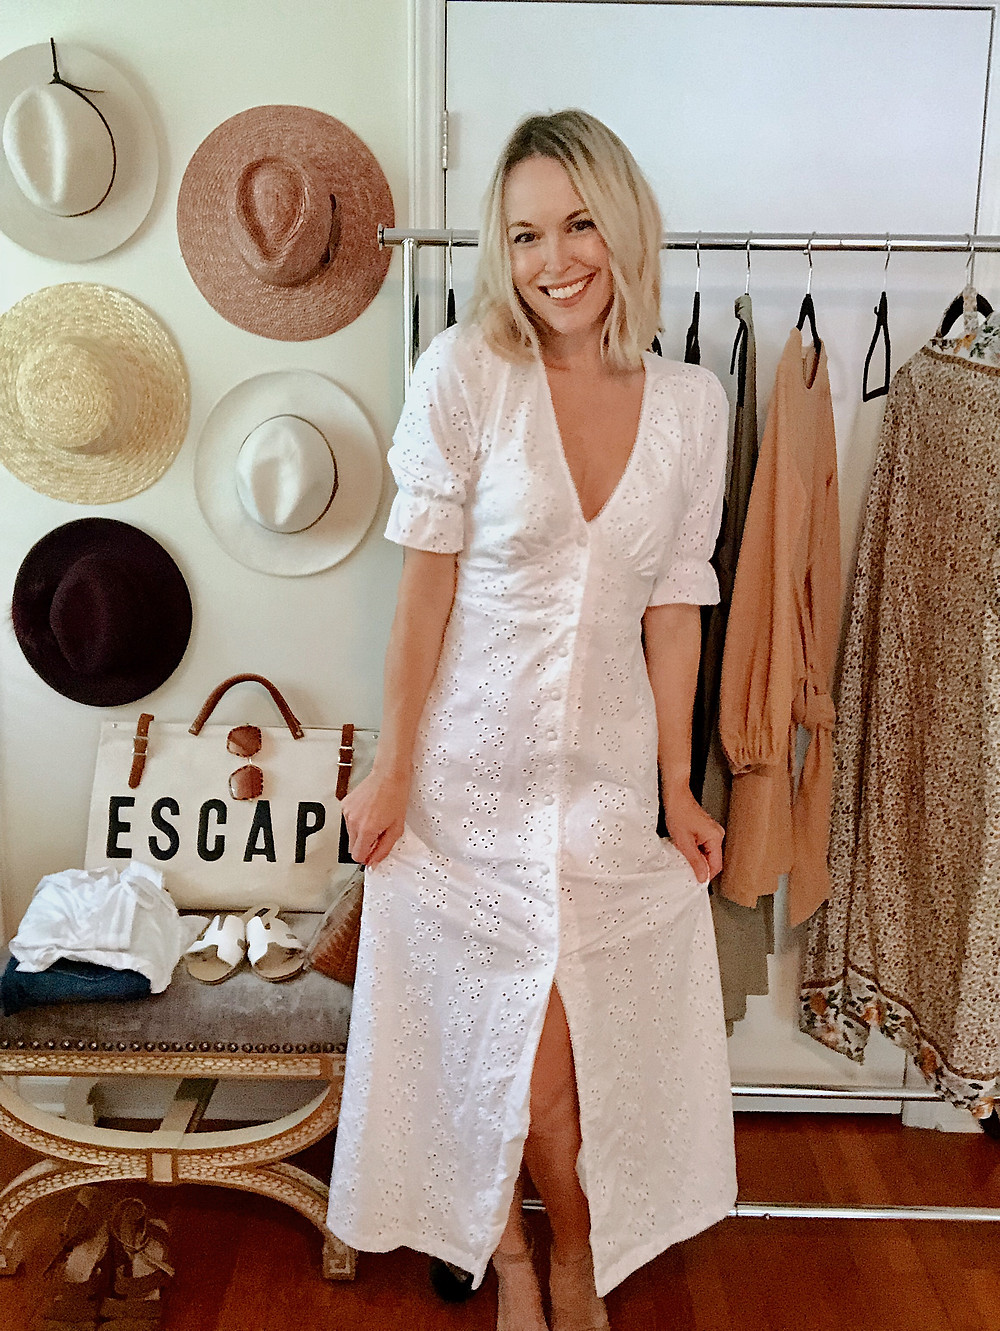 White eyelet maxi dress, date night outfit, wedding, bridal, anniversary getaway to Ashevile, style blogger, everyday style